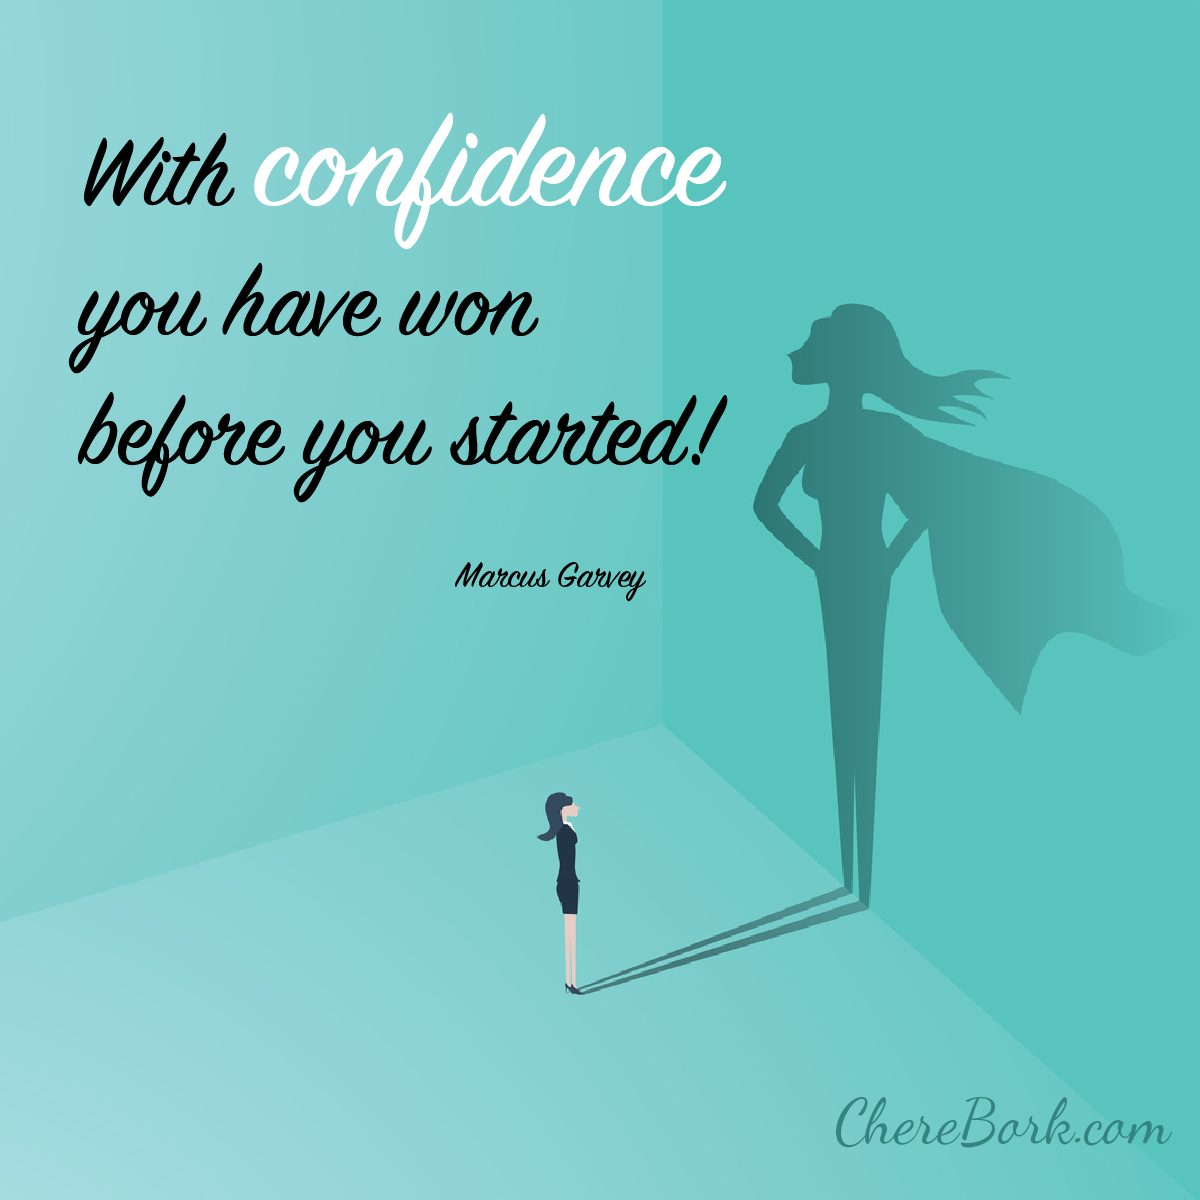 With confidence you have won before you started! -Marcus Garvey